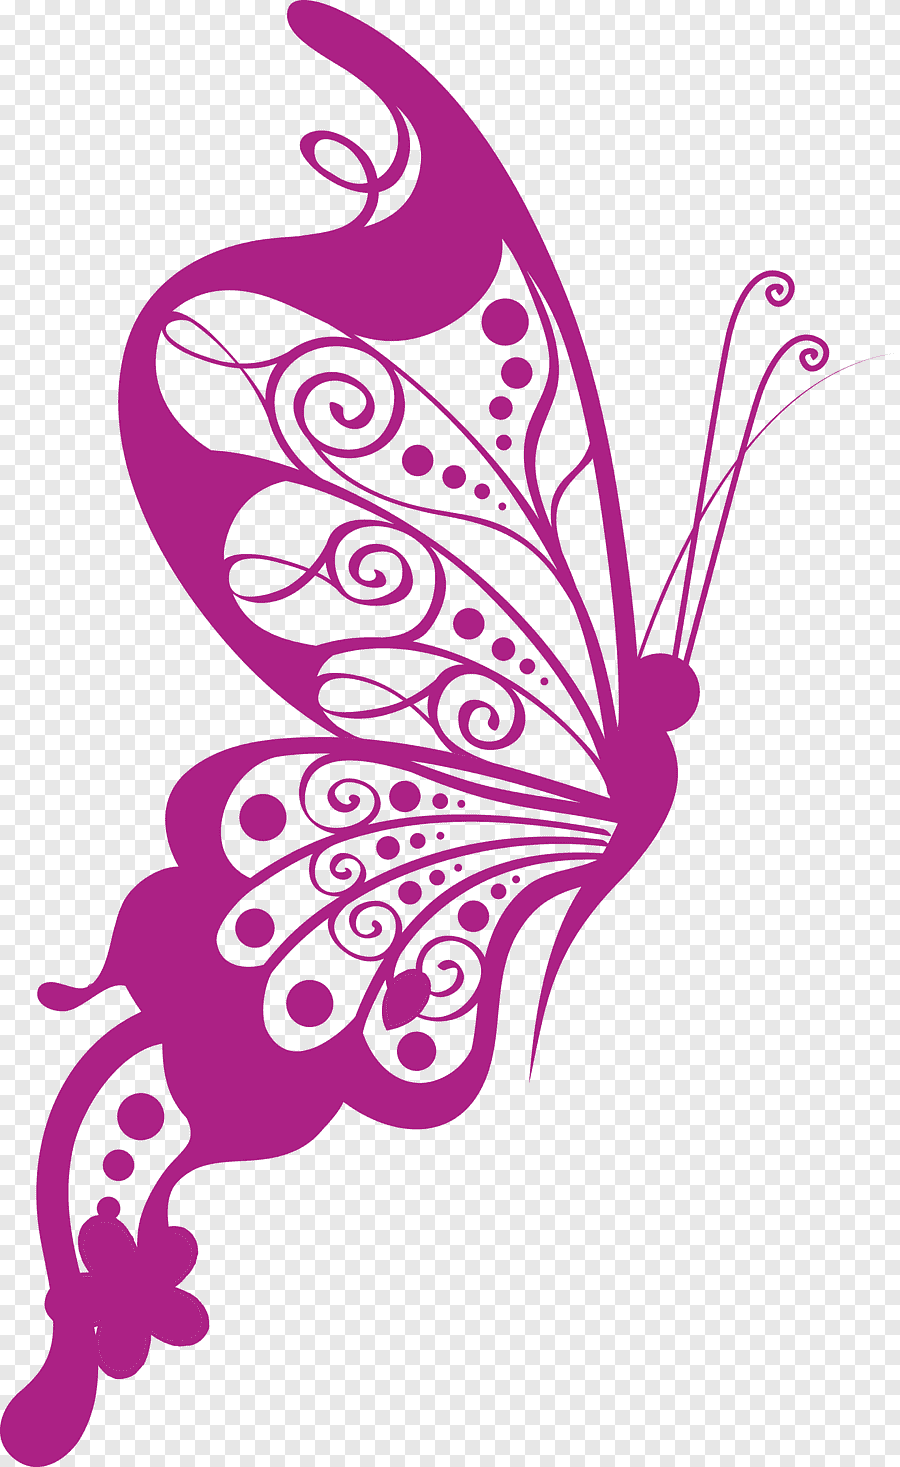 Butterfly PNG Images With Transparent Background | Free